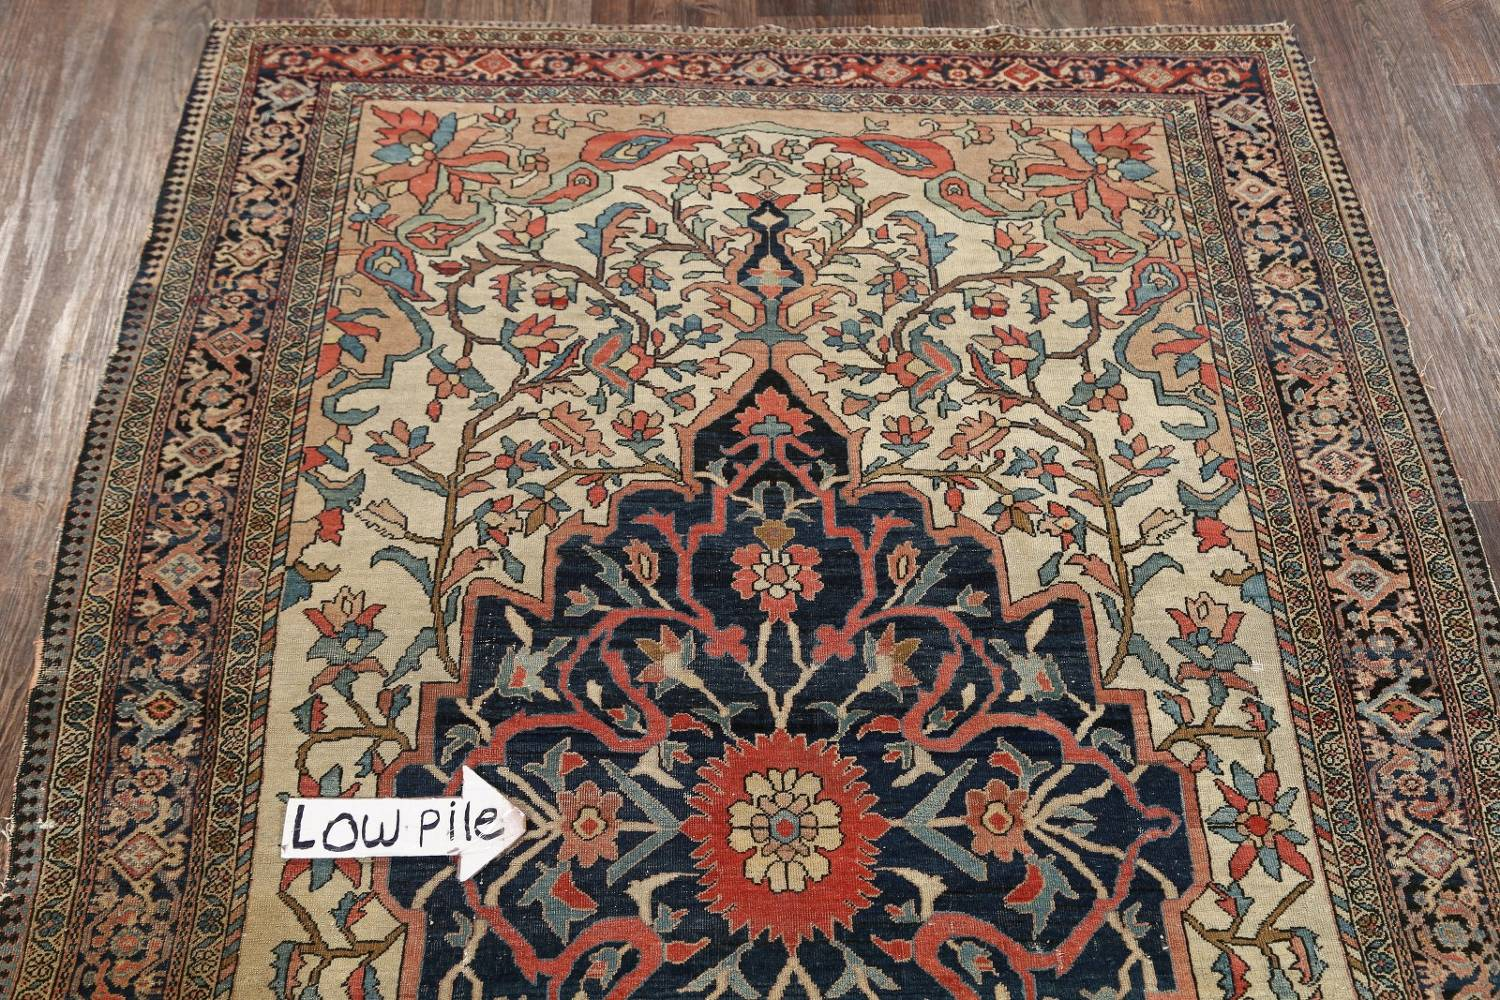 Pre-1900 Antique Floral Sarouk Farahan Persian Hand-Knotted 4'x7' Wool Area Rug image 17